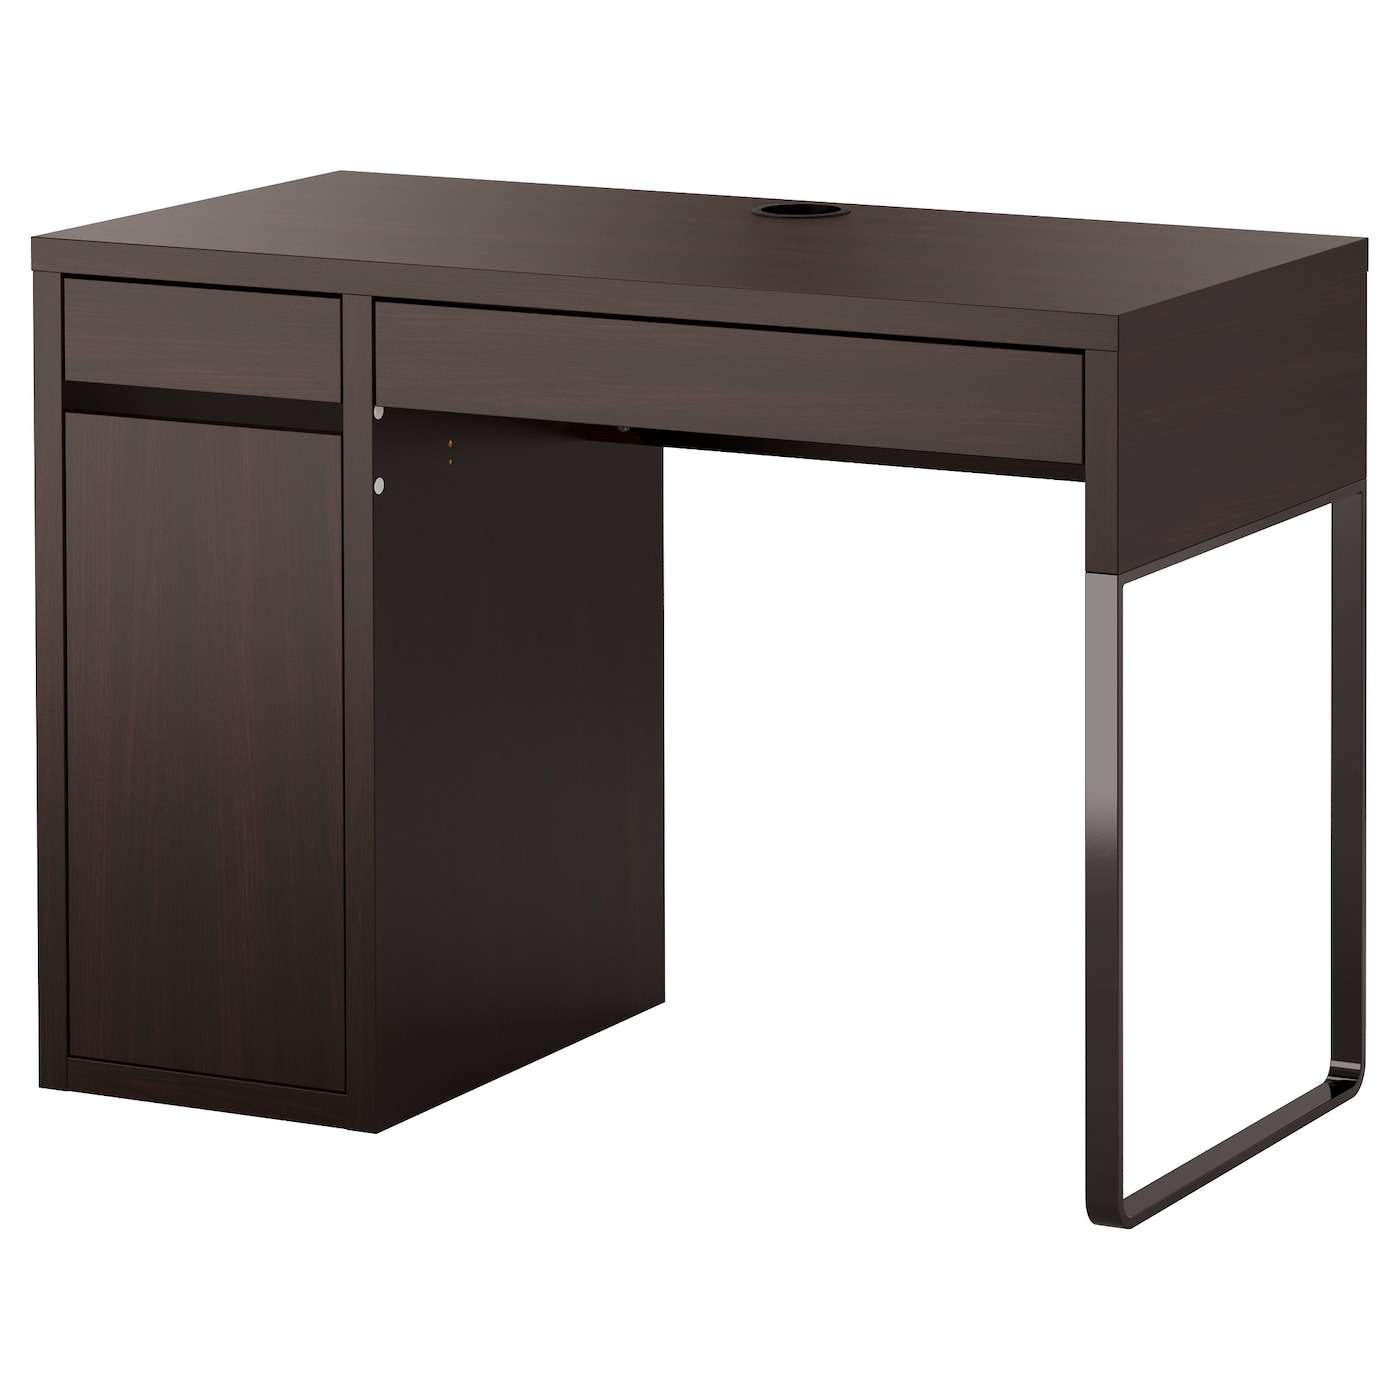 black furniture ikea. IKEA MICKE Desk Drawer Stops Prevent The Drawers From Being Pulled Out Too Far Black Furniture Ikea B